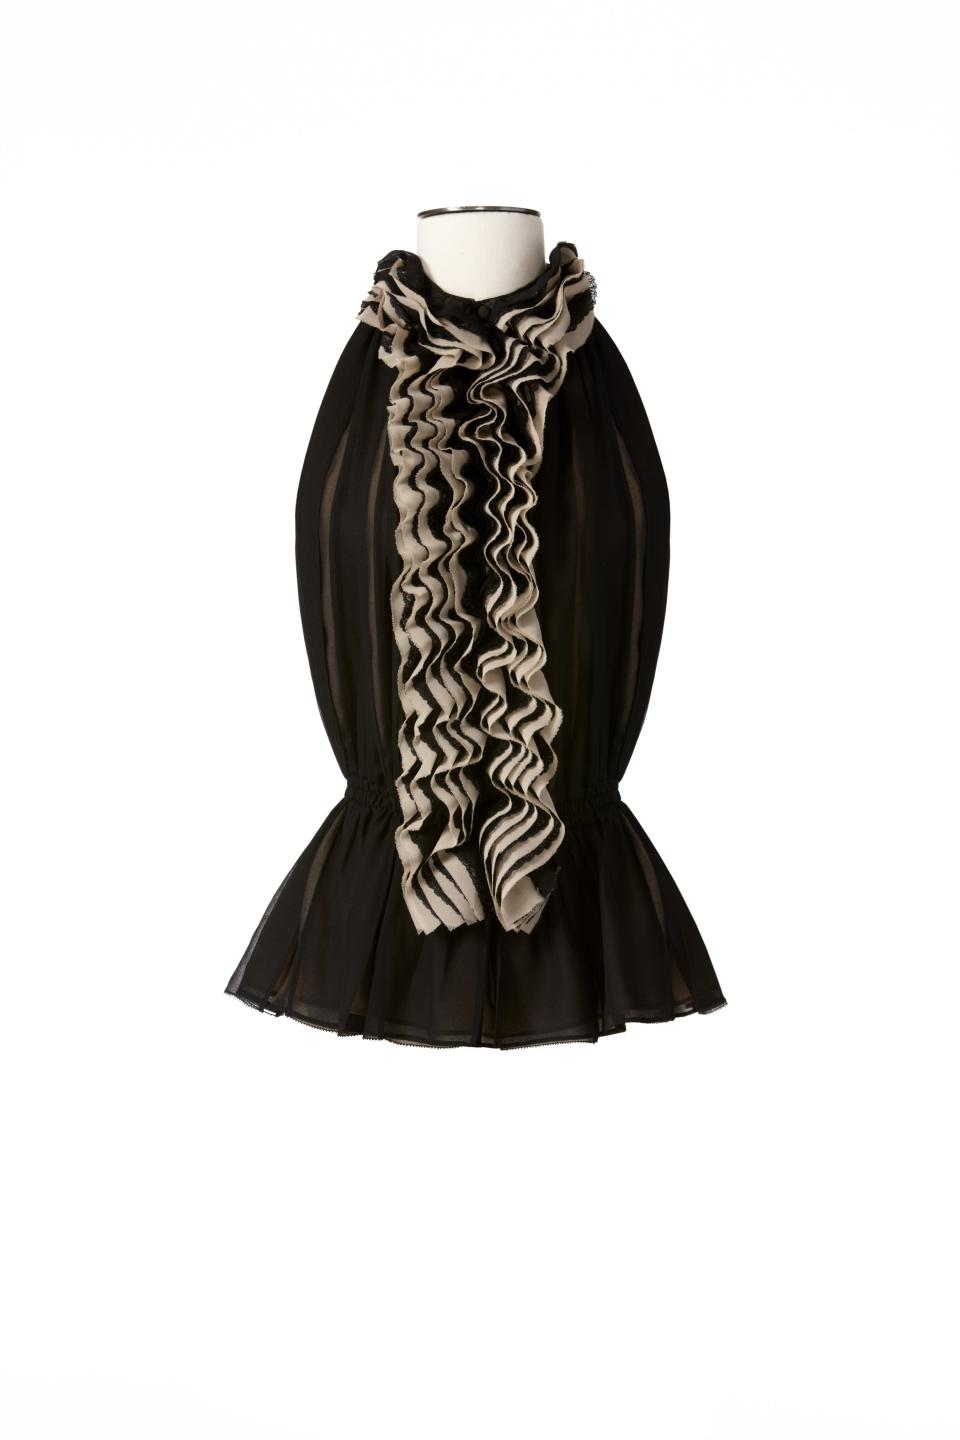 <b>Robert Rodriguez for Target + Neiman Marcus Holiday Collection Top</b><br><br> Price: $79.99<br><br> Size: XS – XL<br><br>